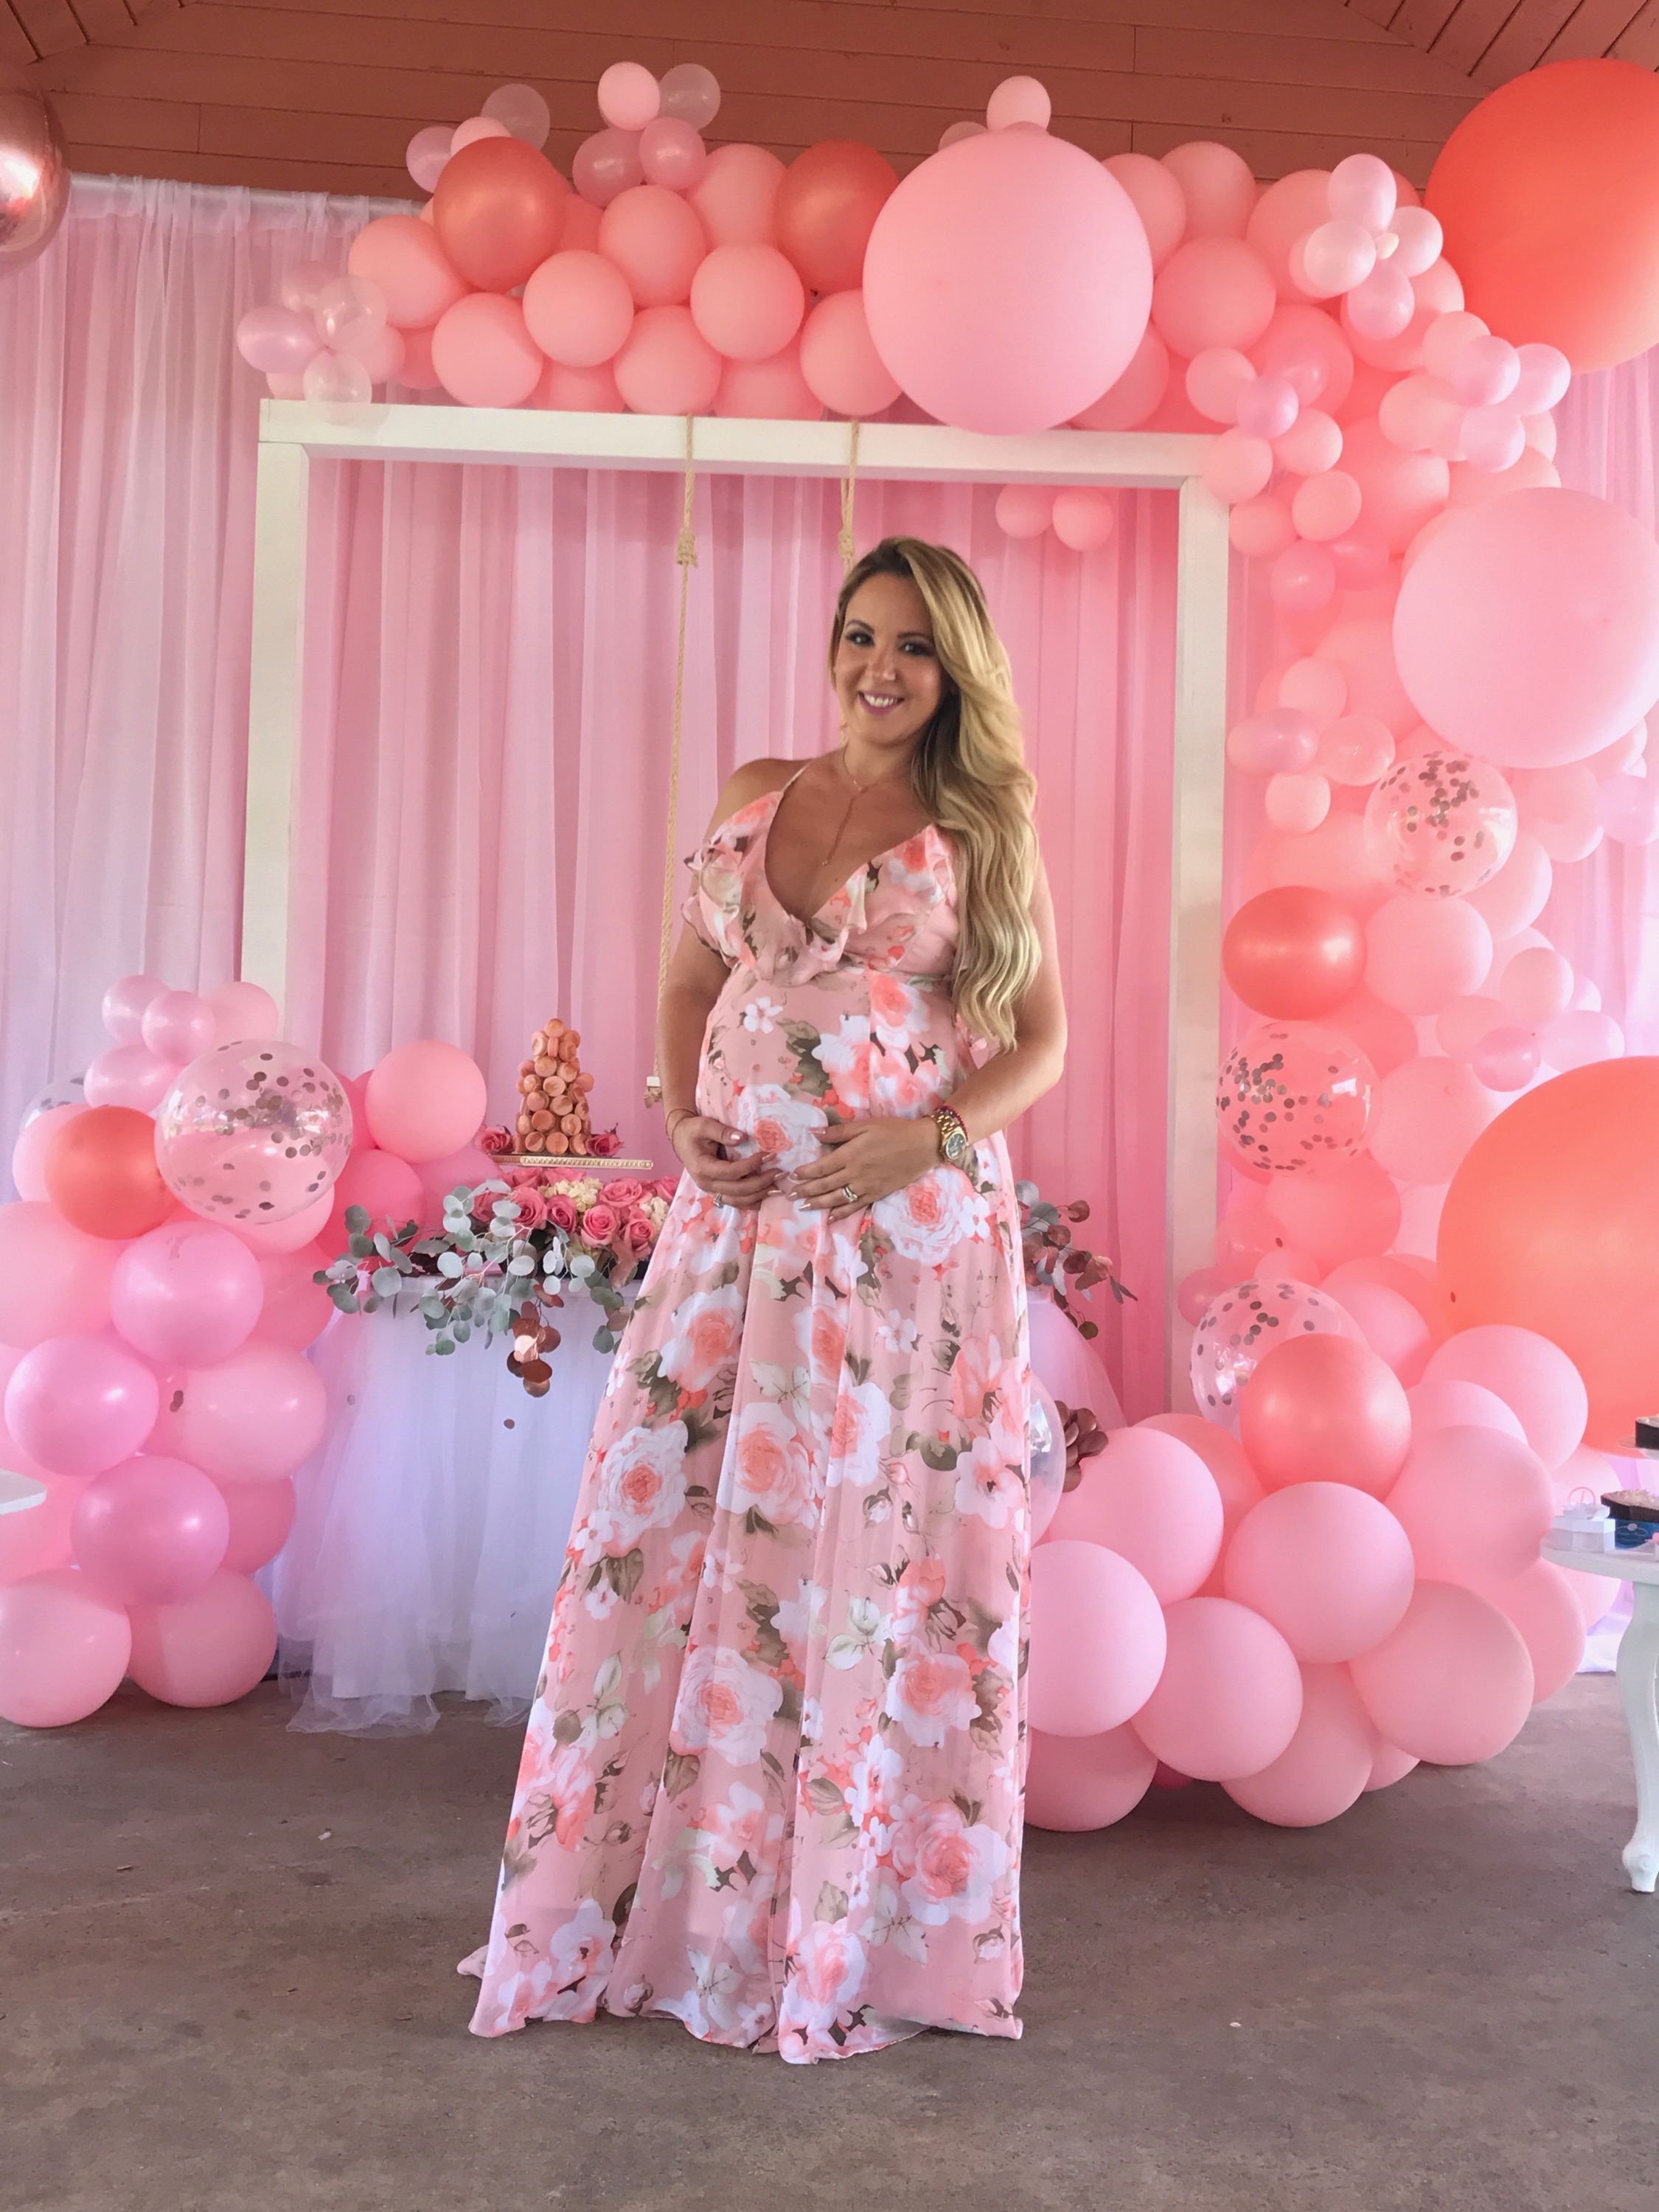 50++ Pink maternity dresses for baby shower ideas ideas in 2021